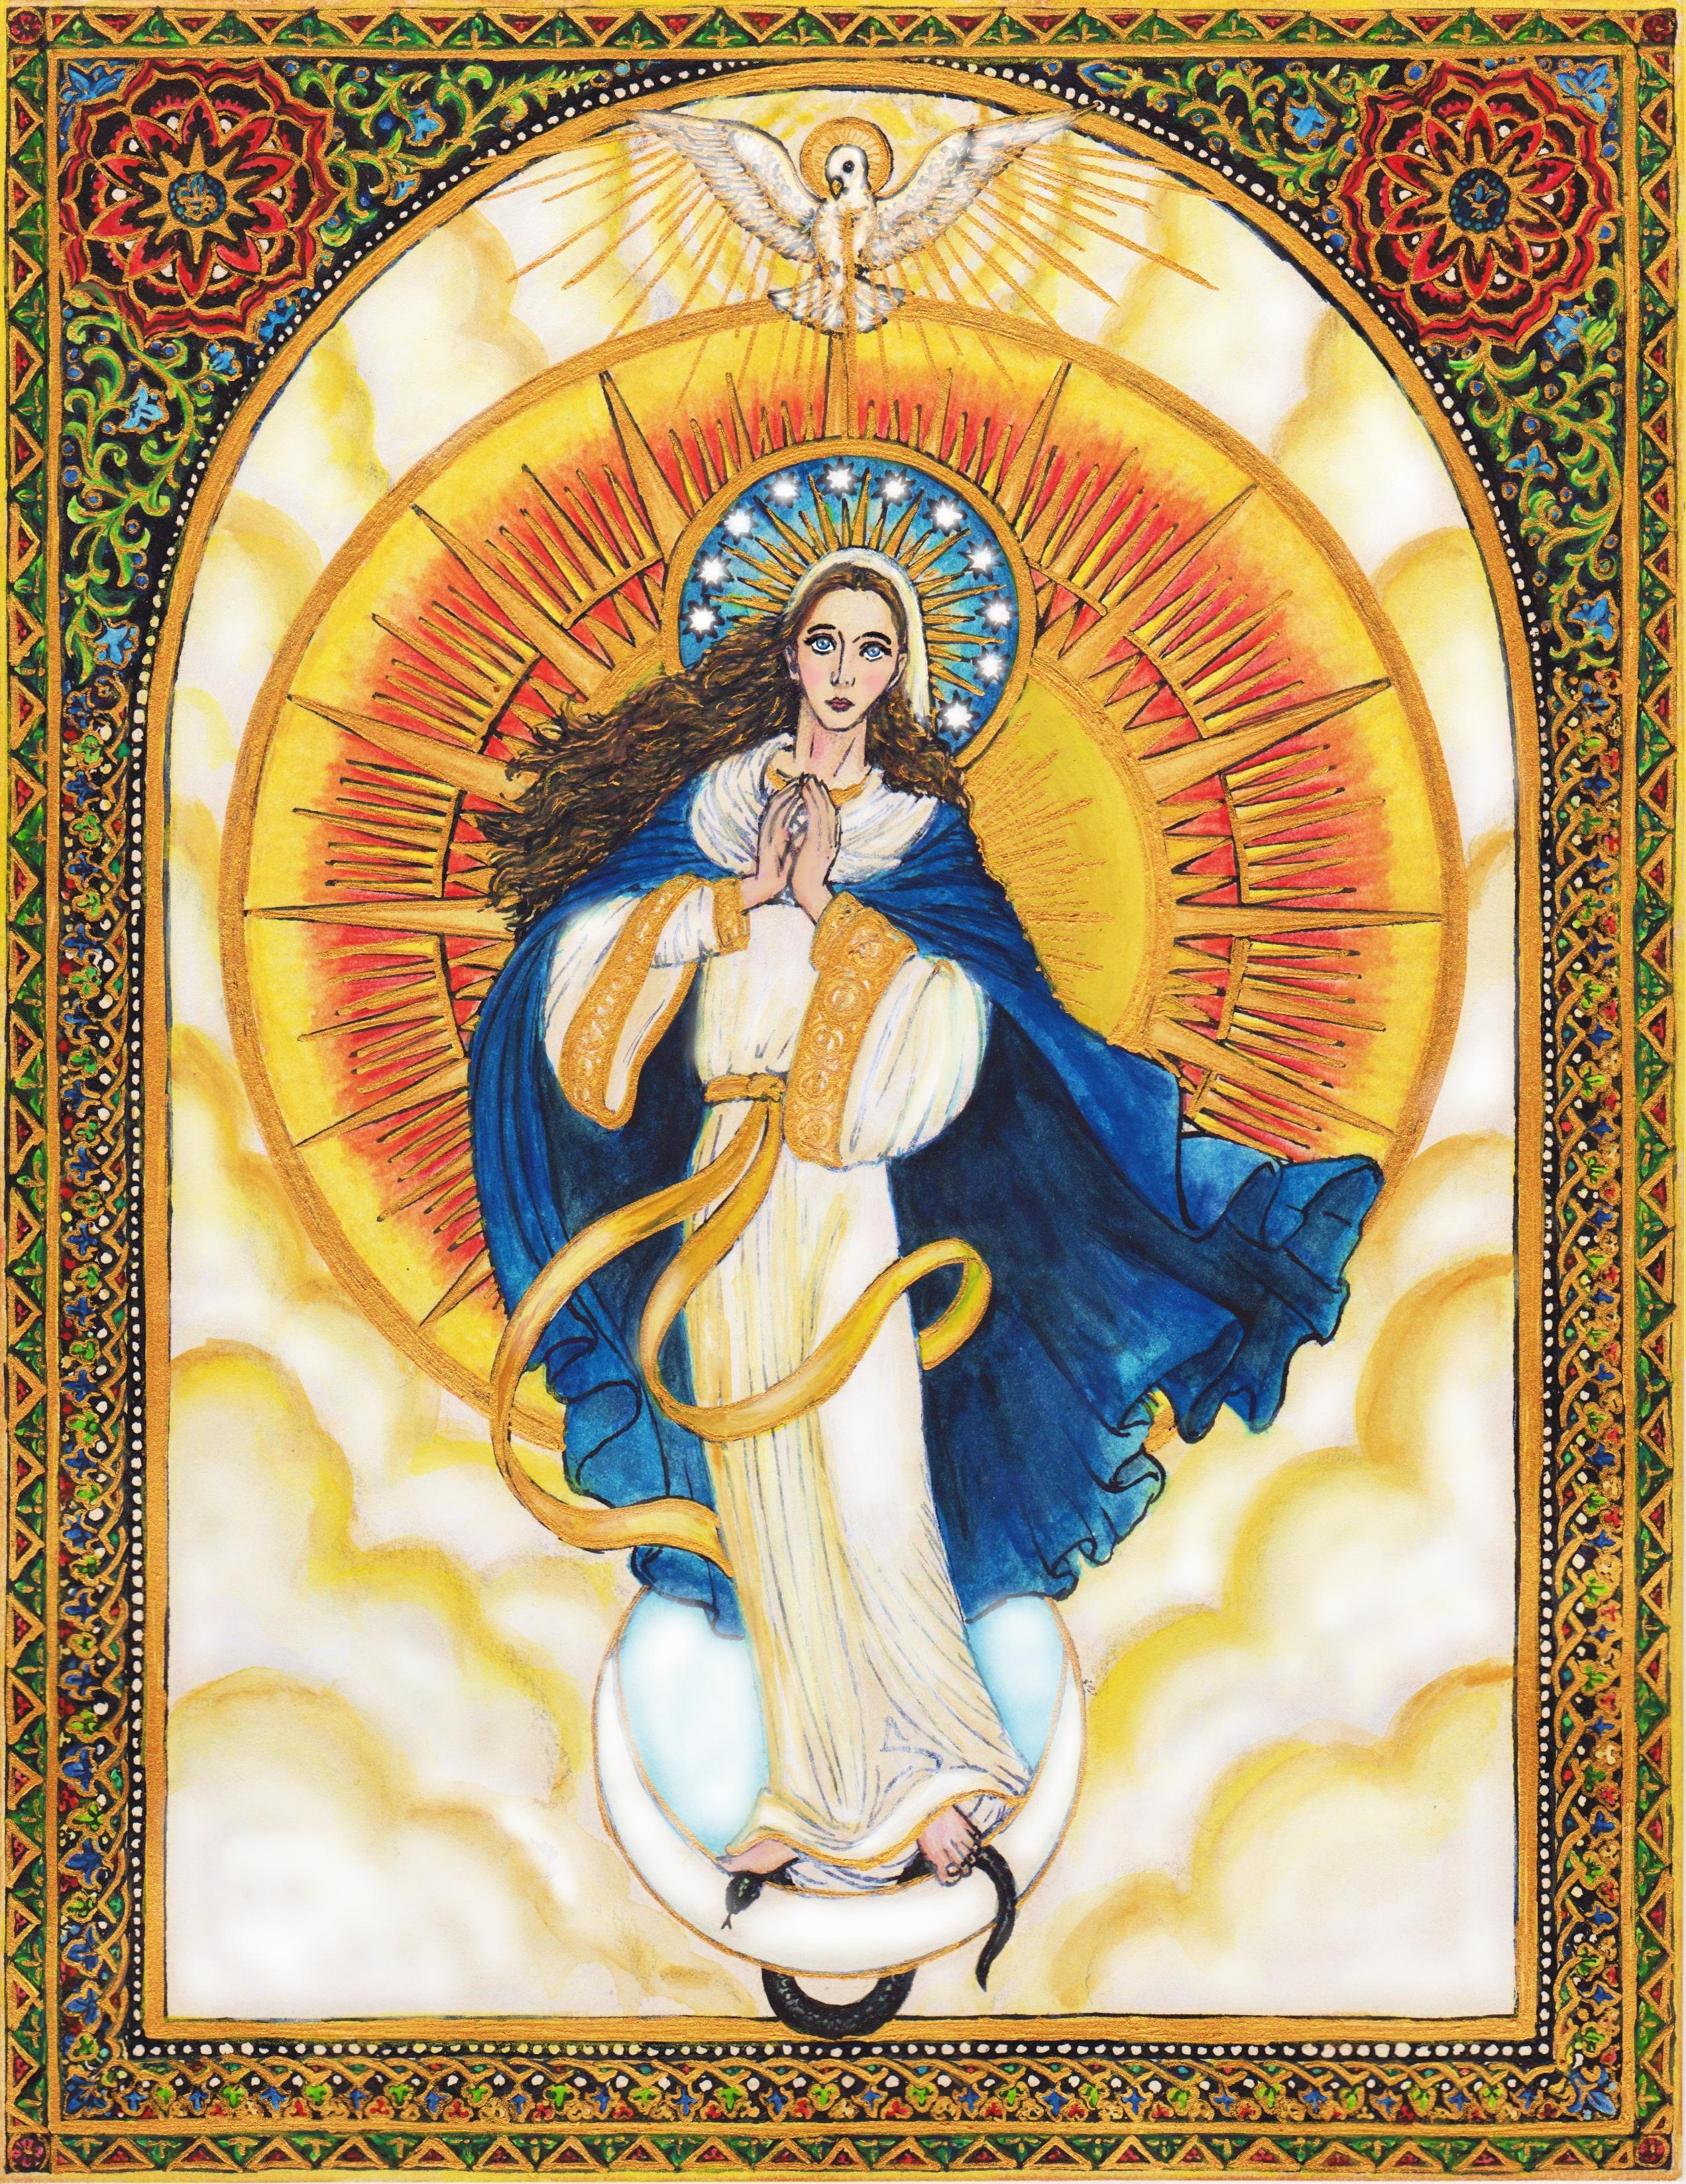 Feast Of Immaculate Conception Of Mary 2011